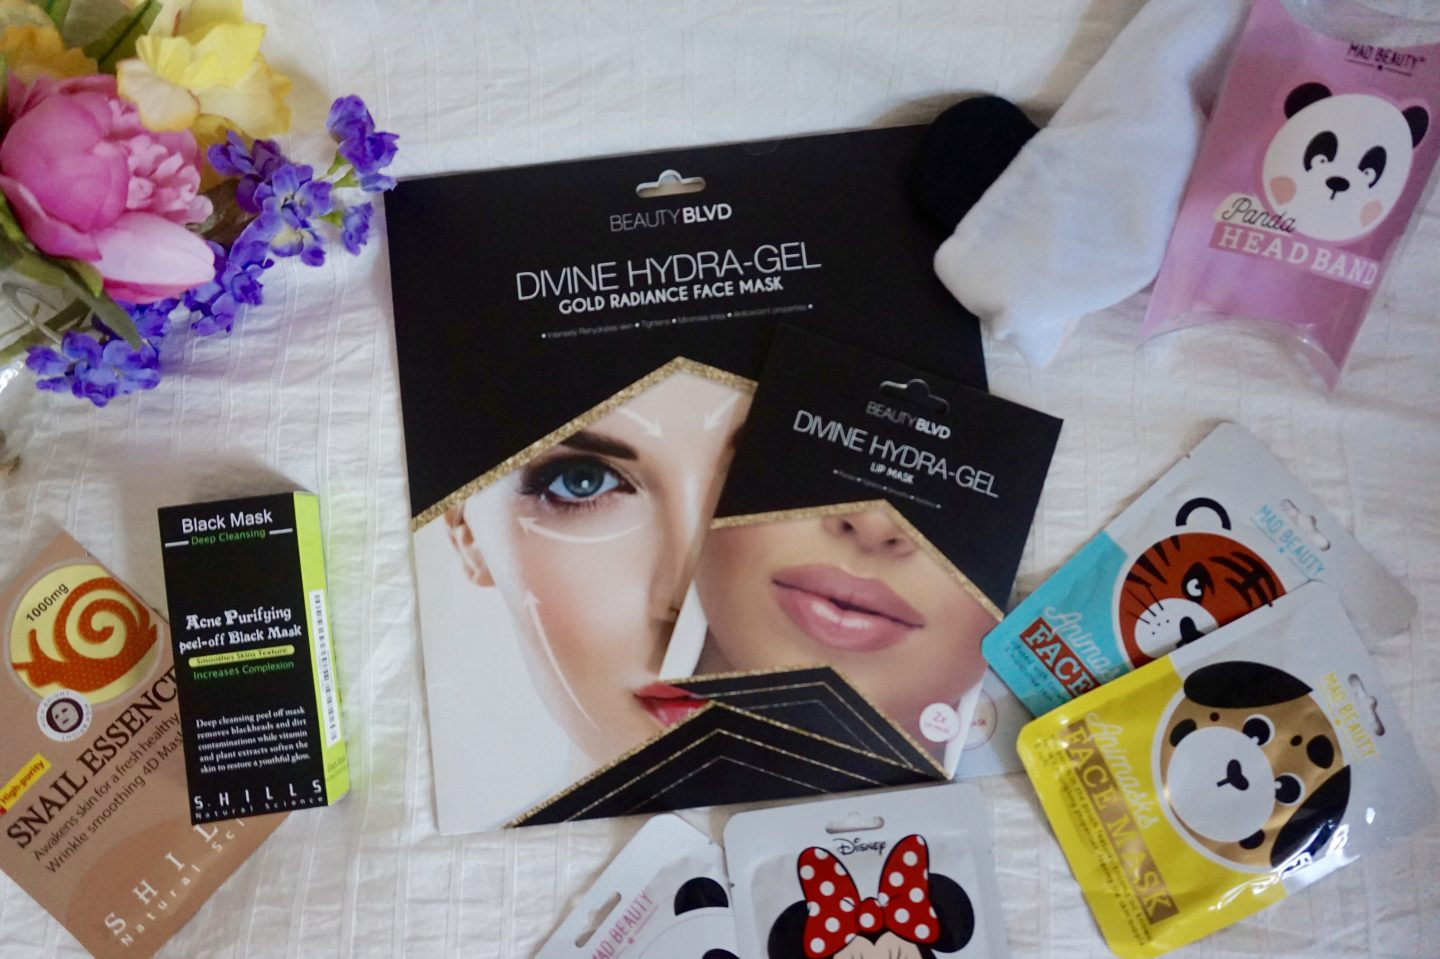 FACE, LIP, NECK Masks: What's the Big Deal?!?!